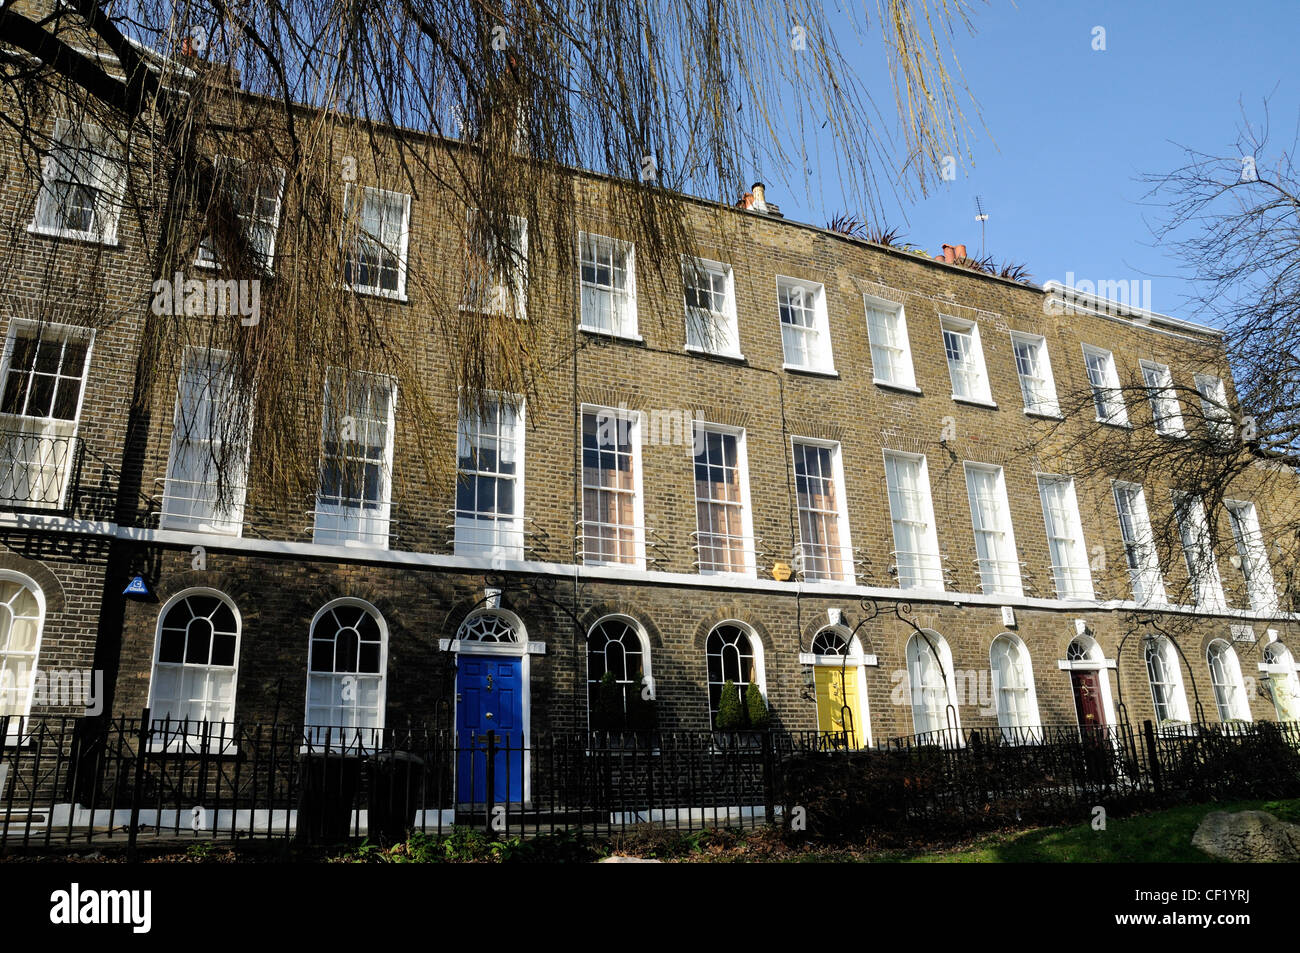 Duncan Terrace, row of Georgian terraced house Islington London England UK Stock Photo